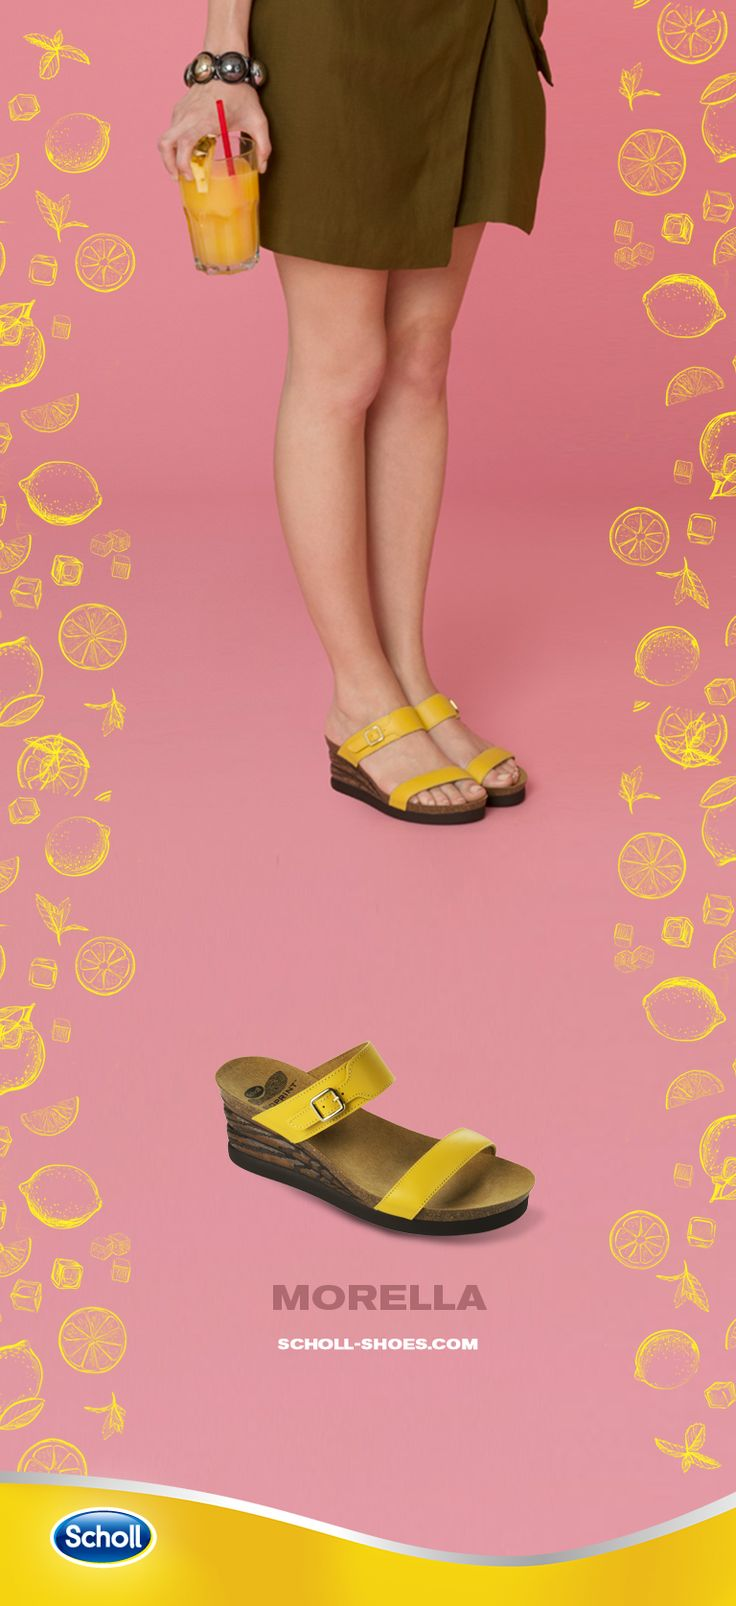 Your friends are waiting for you with an iced cocktail for some chit-chat. They will tell you the latest gossip! Wear Morella and you'll be ready to go out.  Discover more on scholl-shoes.com